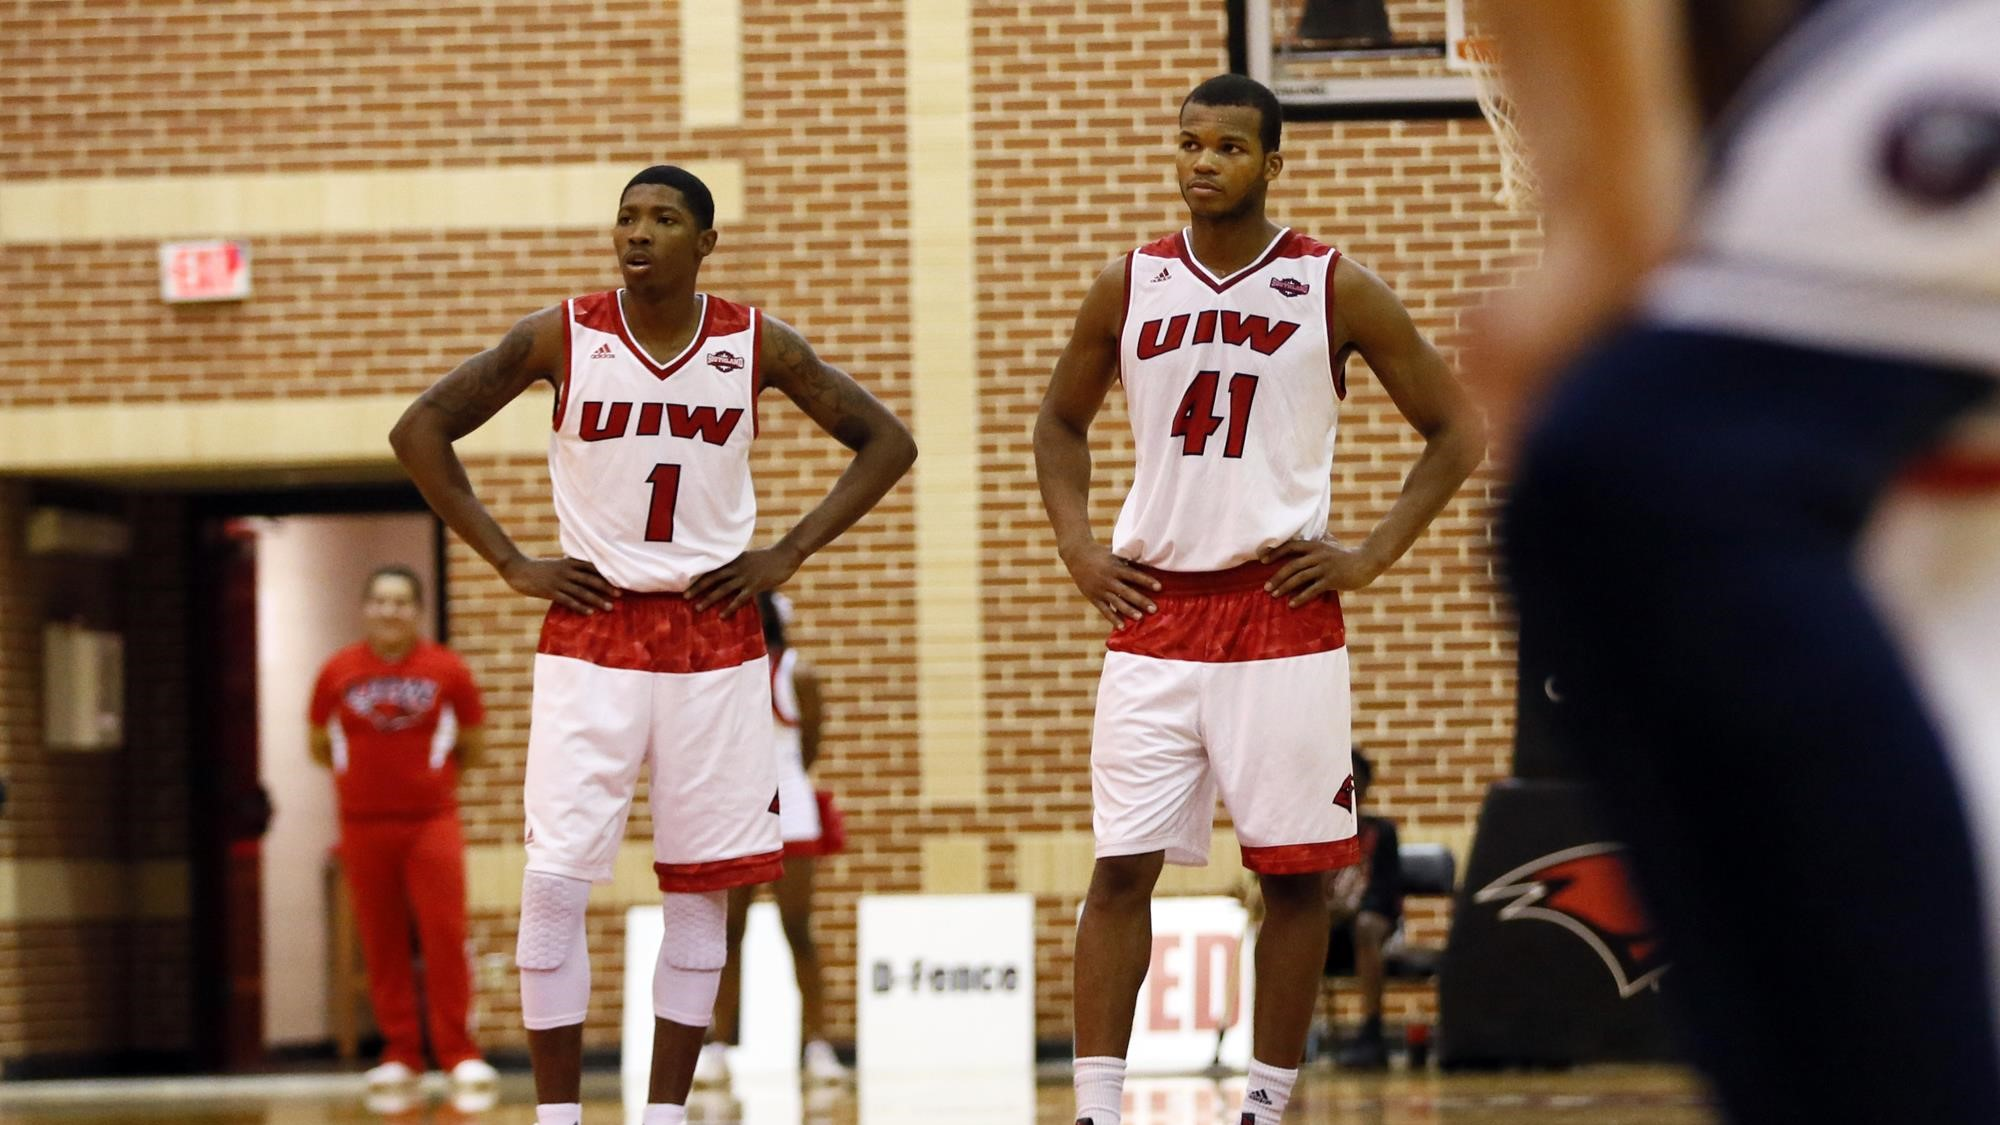 sacramento state cancels saturday contest with uiw men s basketball